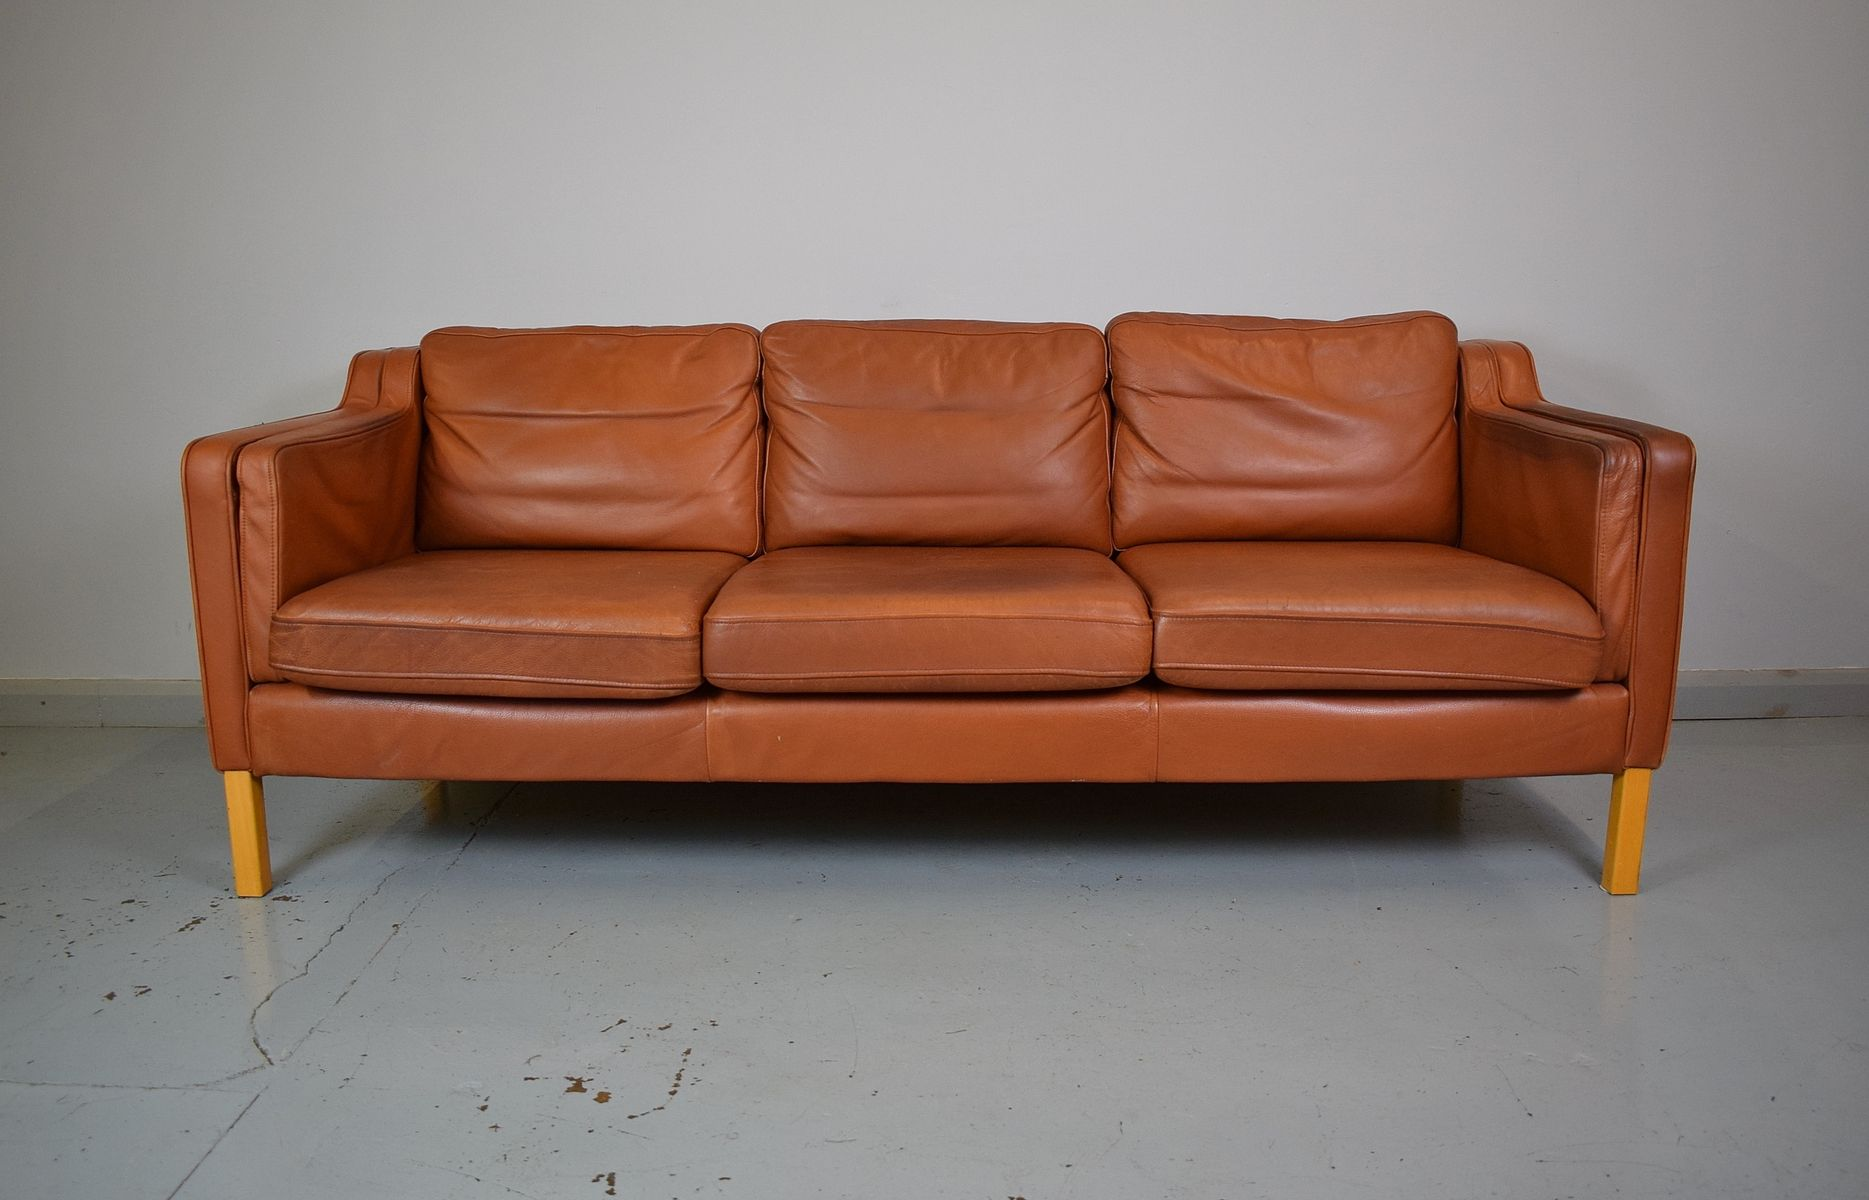 Tan brown leather 3 seater sofa by georg thams for vejen for Tan couches for sale